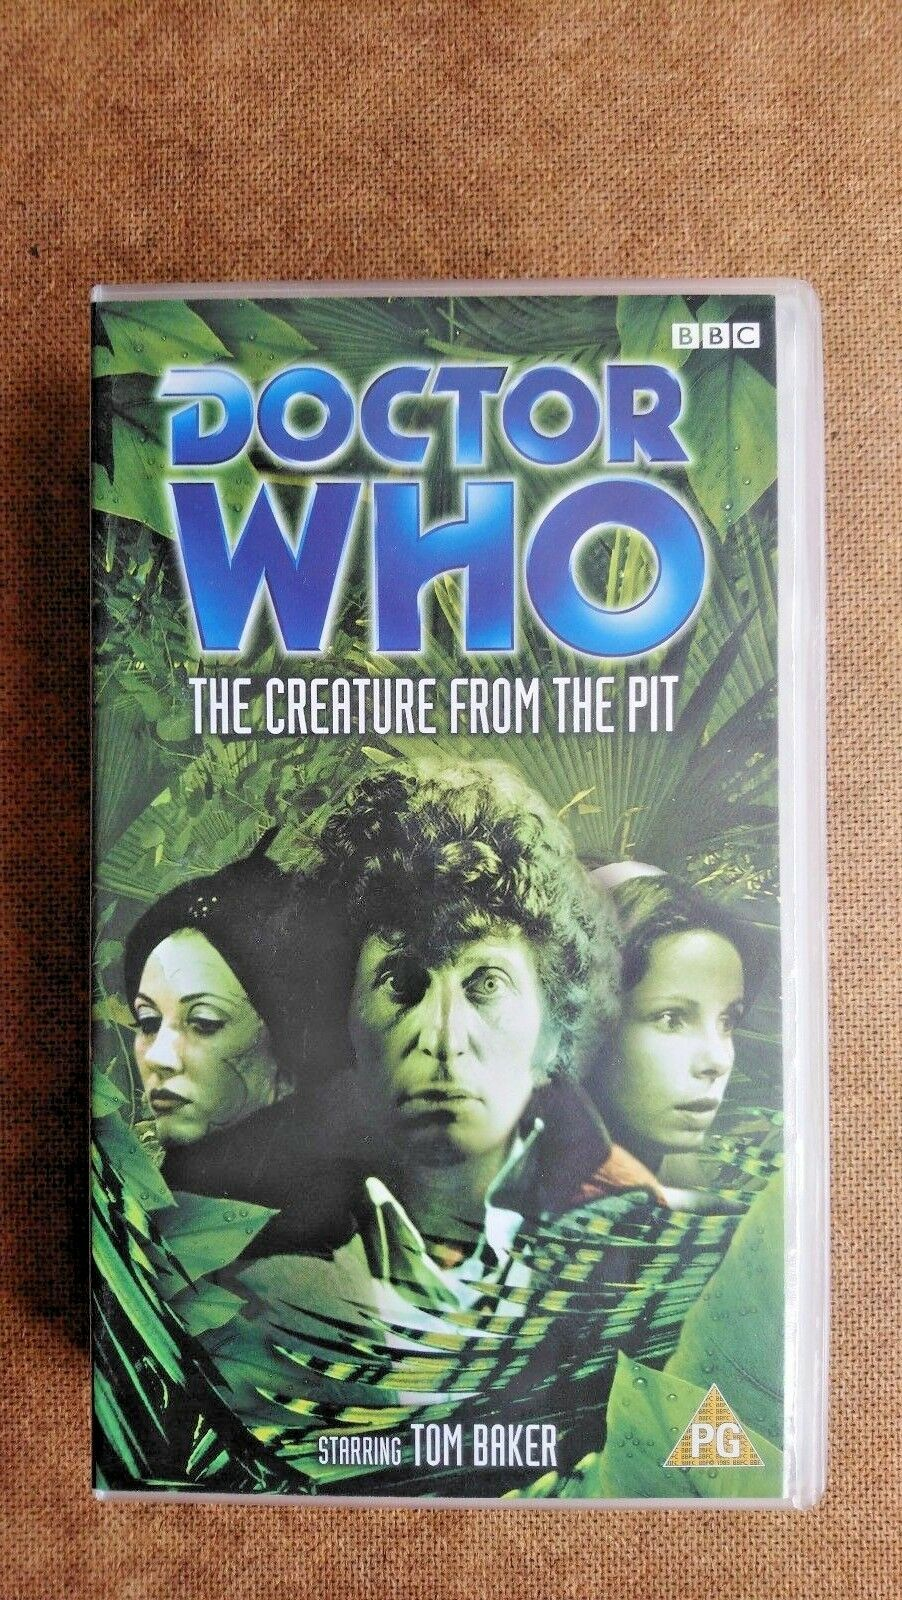 Doctor Who - The Creature From The Pit (VHS, 2002) - Tom Baker (NEW and SEALED)